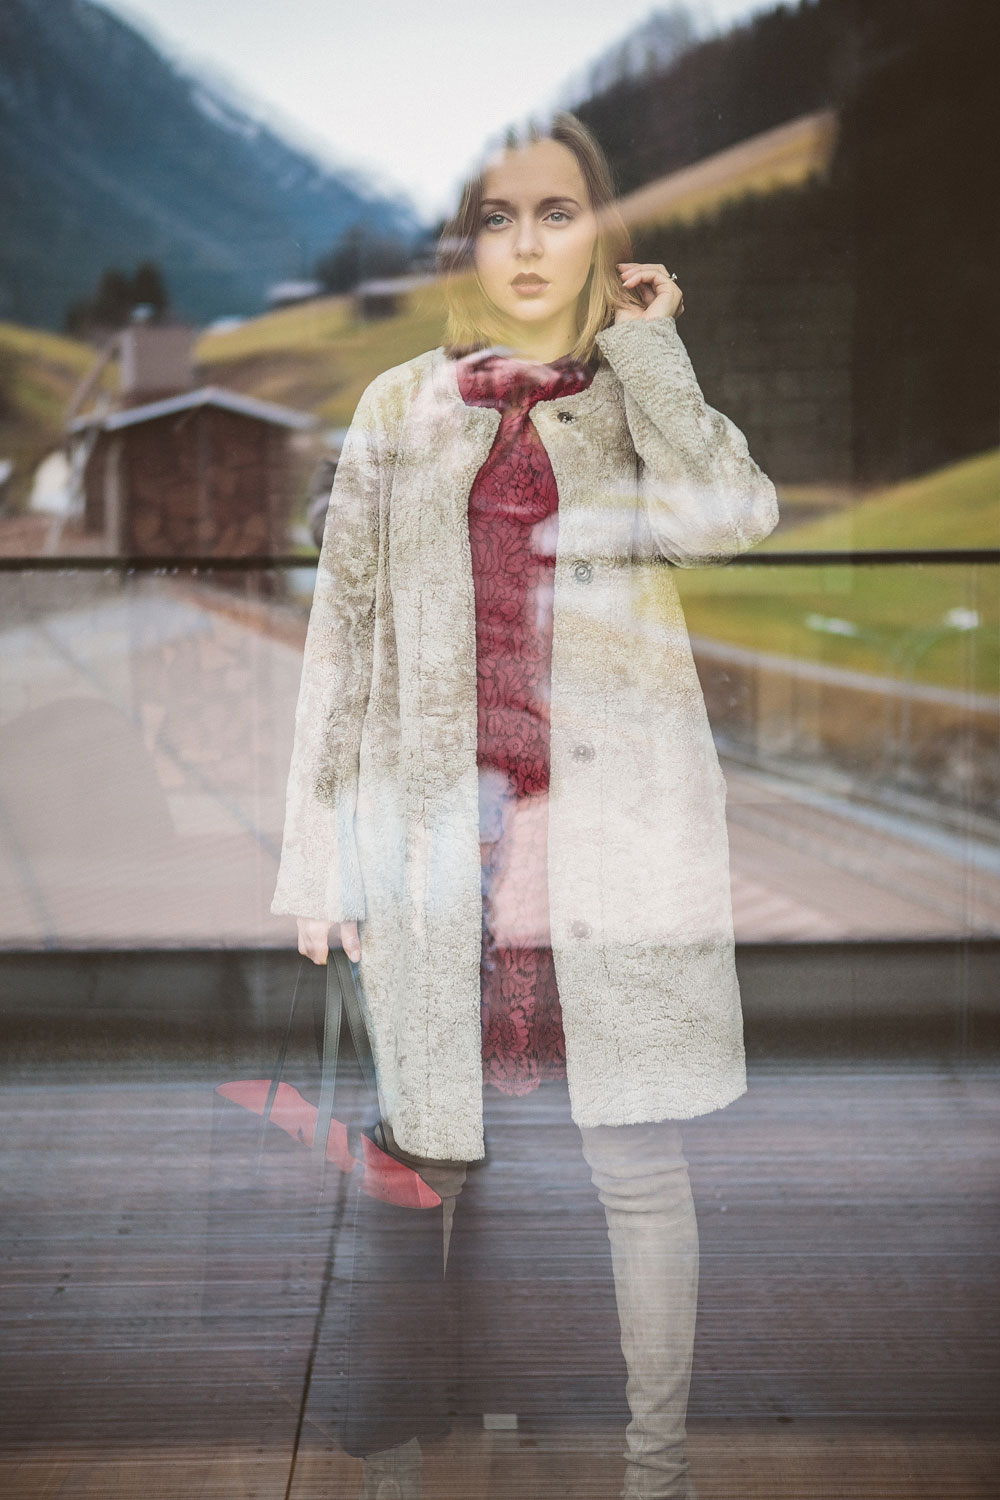 darya-kamalova-thecablook-fashion-lifestyle-blogger-from-thecablook-com-wearing-theoutnet-iris-ink-wine-lace-dress-with-coat-and-bag-and-stuart-weitzman-over-knee-boots-in-austria-zhero-hotel-kappl-president-suite-8480